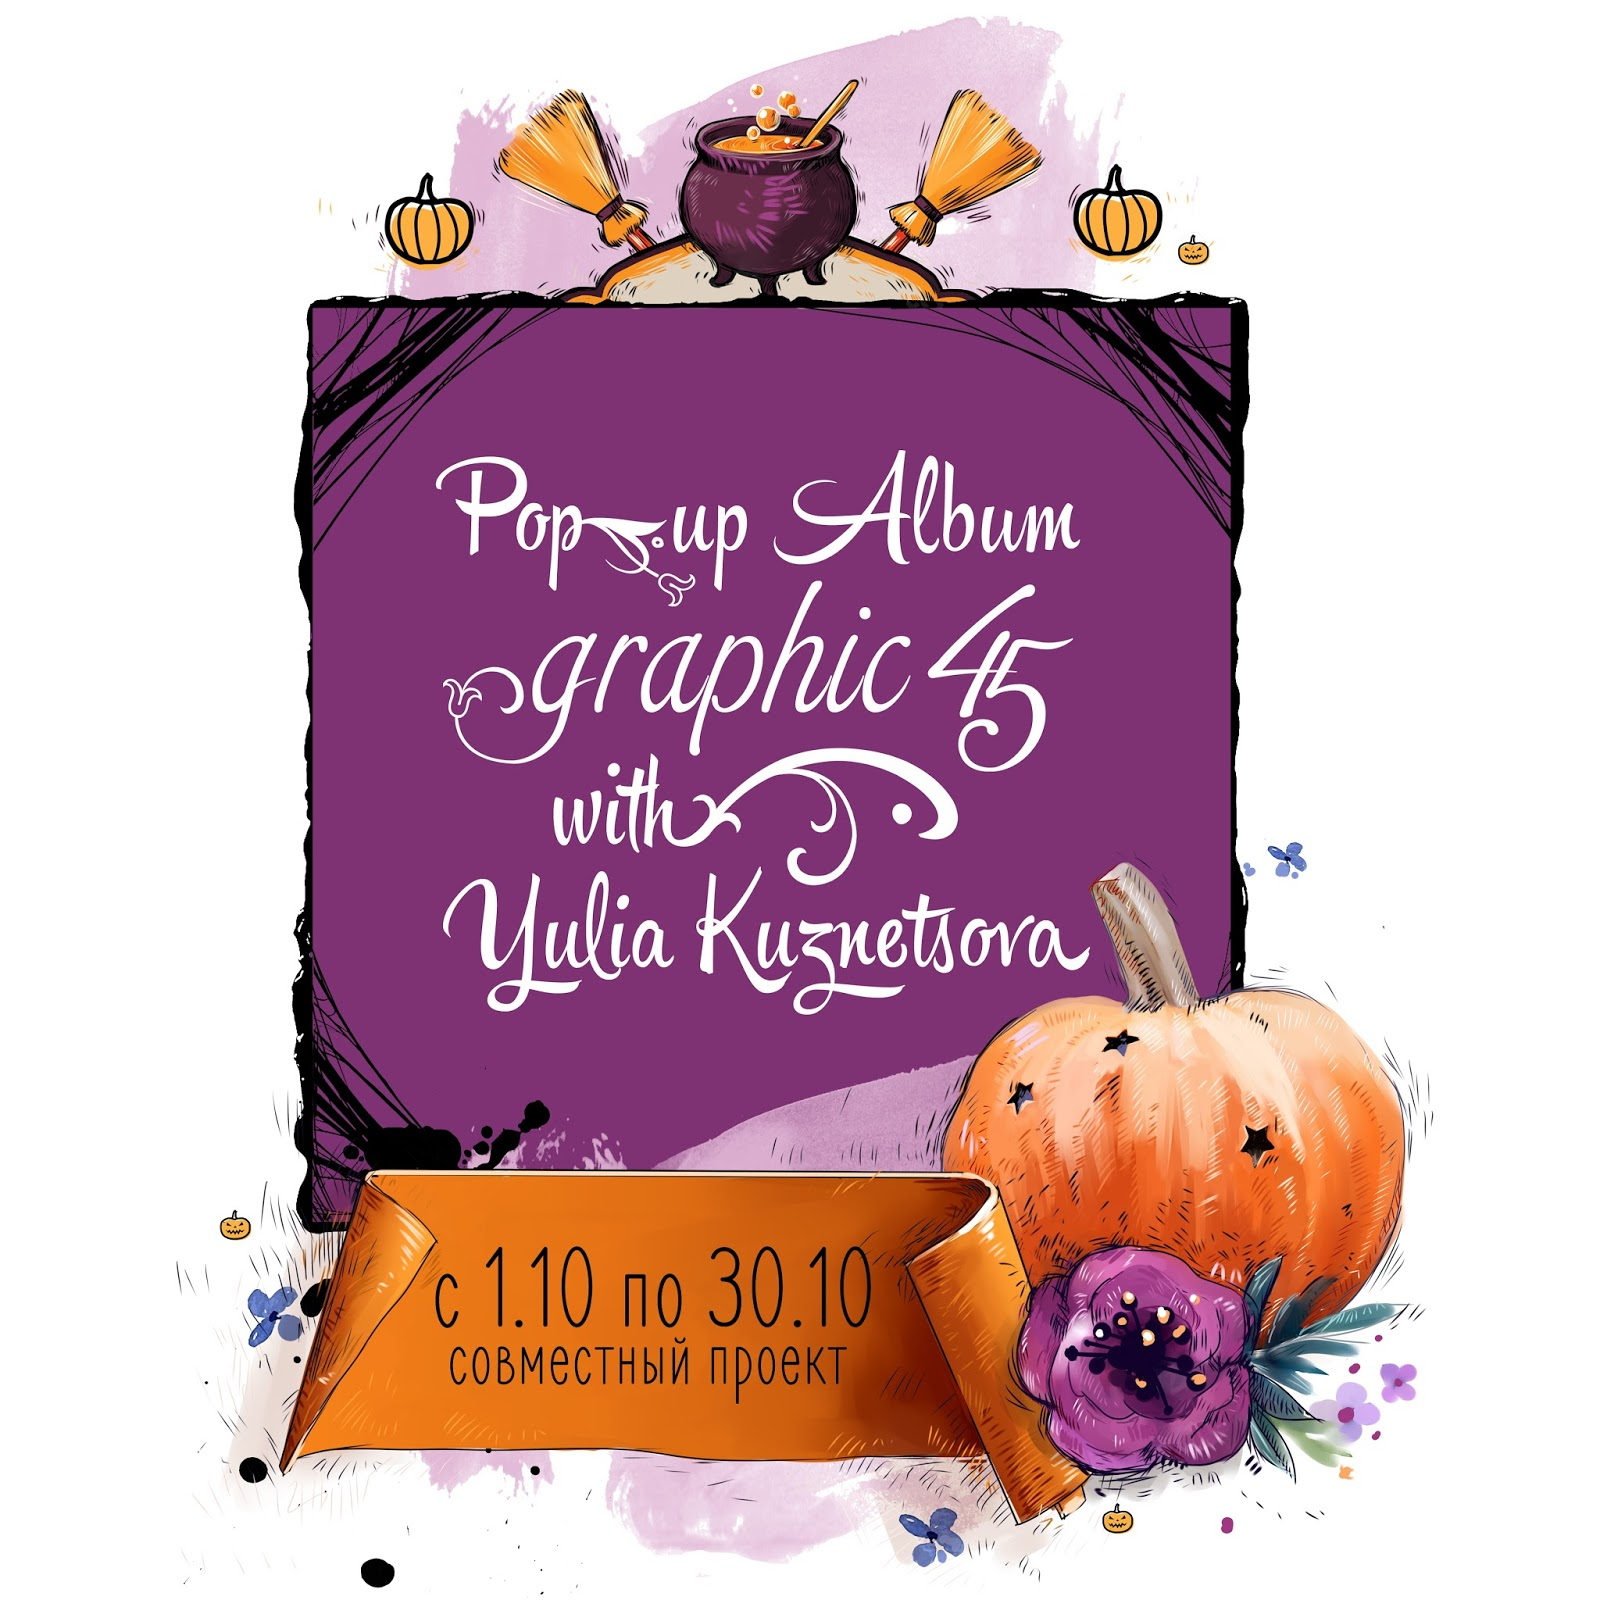 "СП ""Pop-up Album Graphic 45"" with Yulia Kuznetsova"